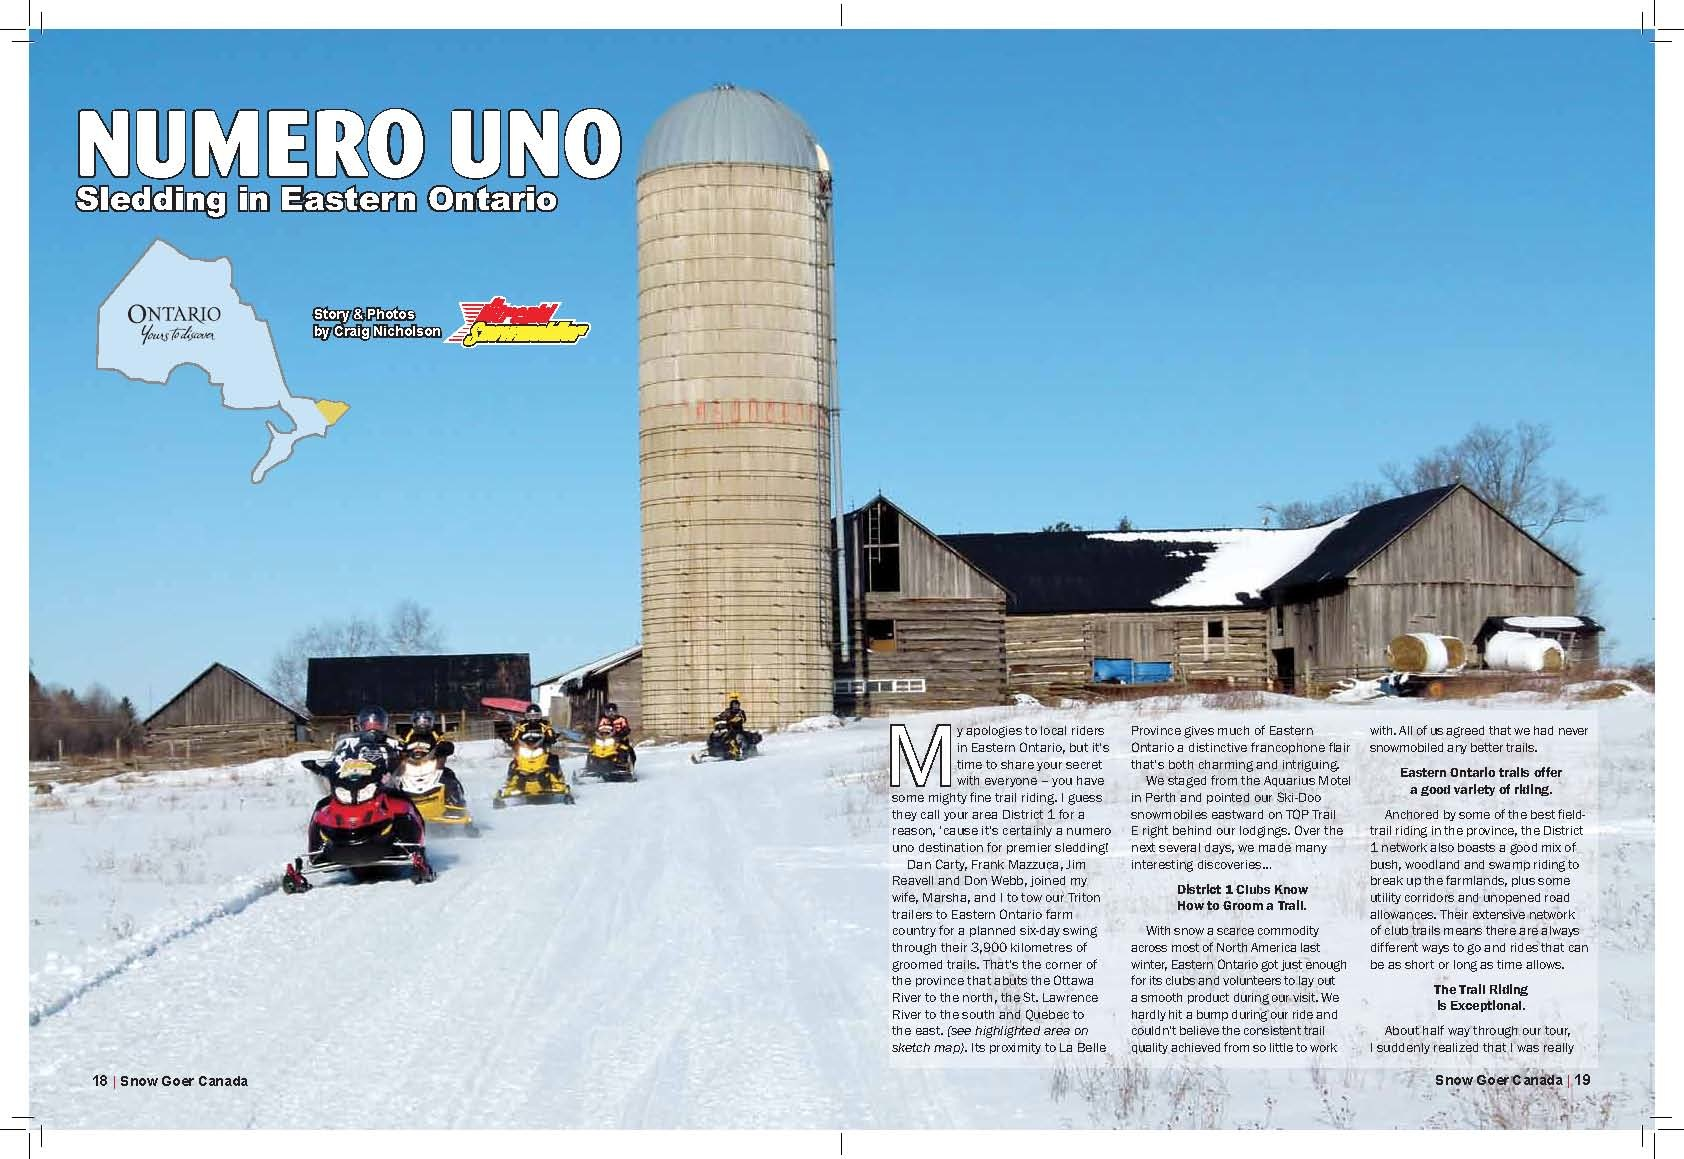 Eastern Ontario Ski Doo tour article